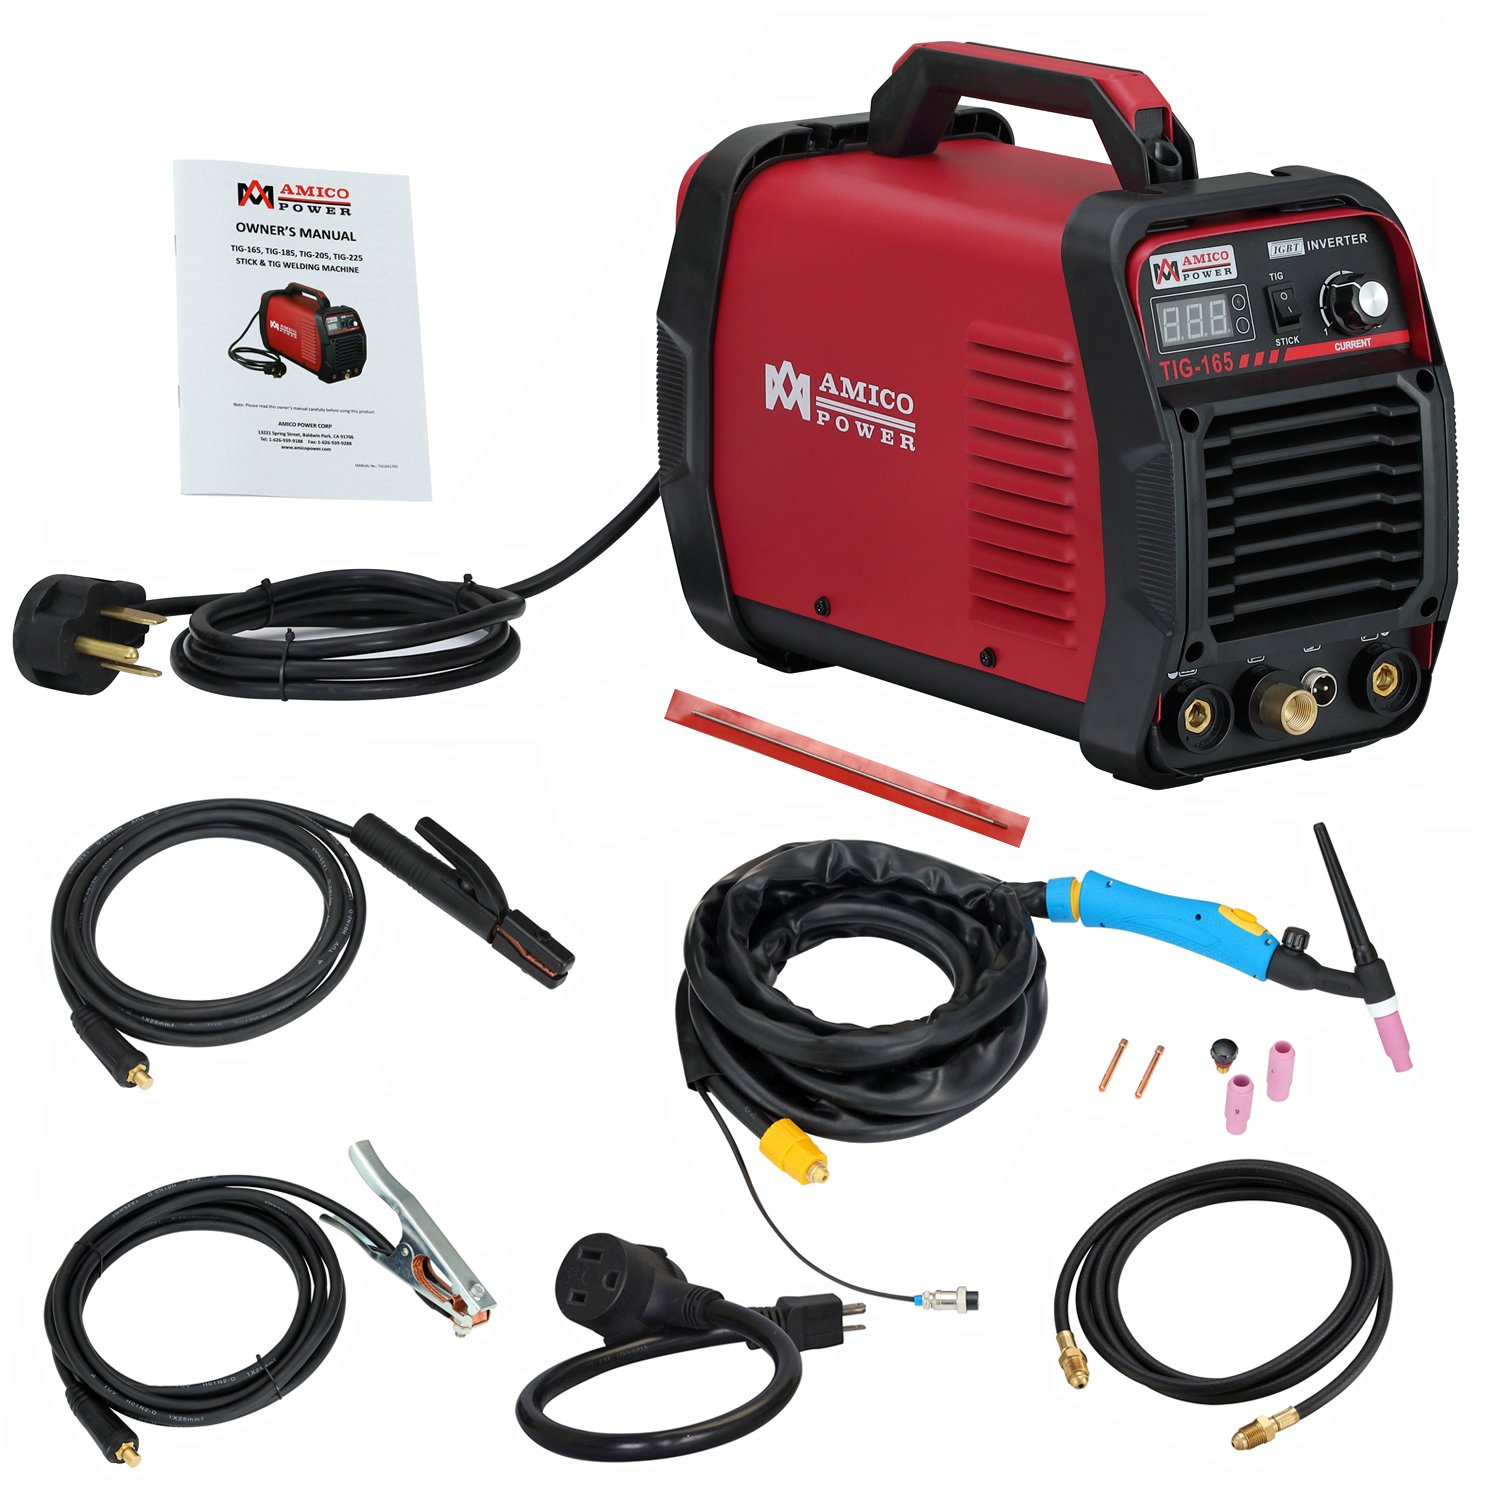 Amico TIG-165, 160 Amp TIG Torch High Frequency Start with Stick ARC Welder, 115/230V Dual Voltage Inverter Welding Machine by Amico